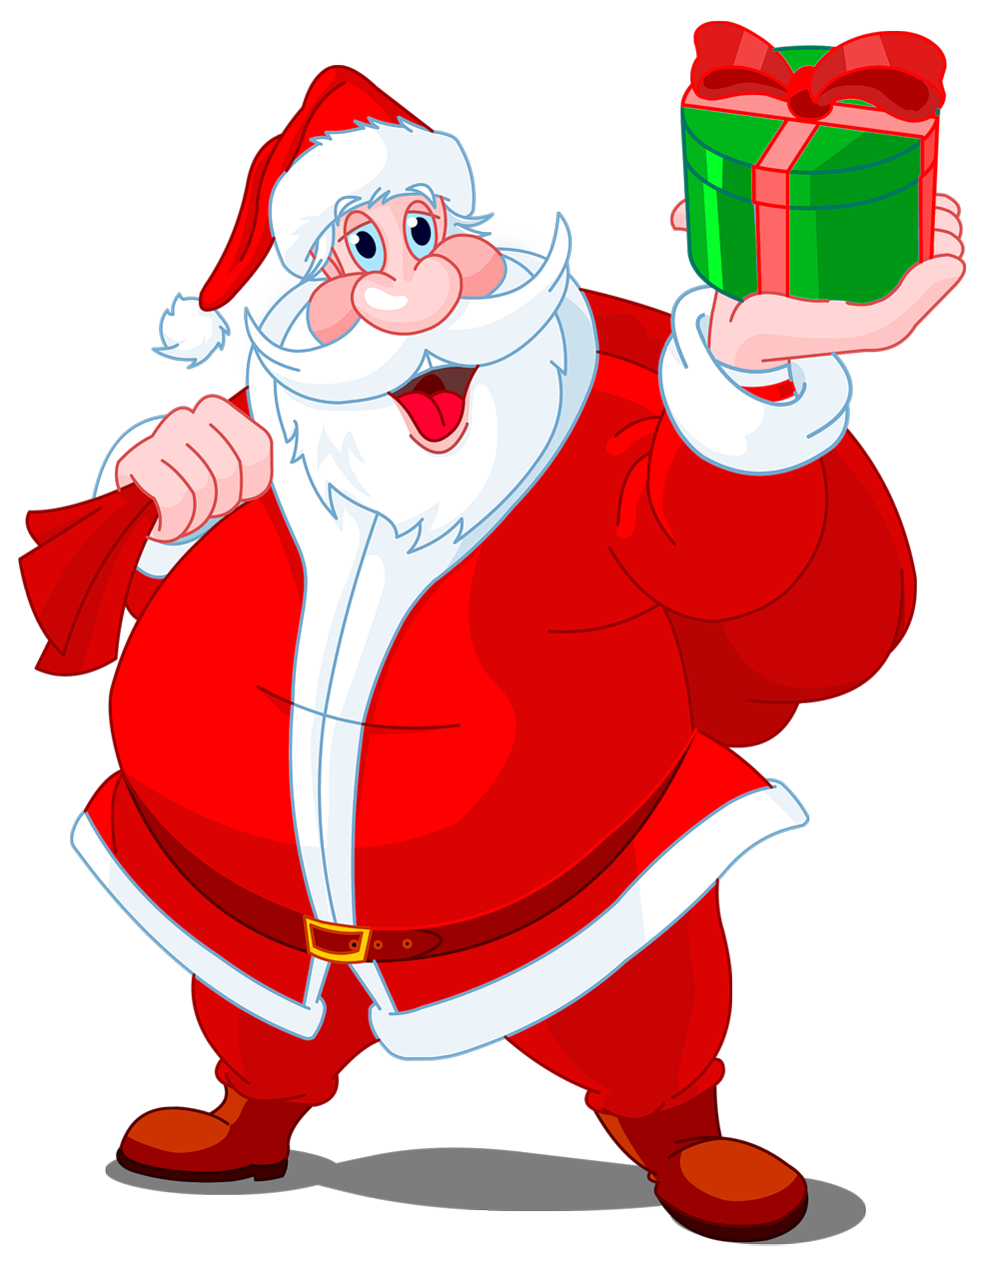 ... Clip Art Free furthermore Santa Claus Clip Art Transparent. on merry